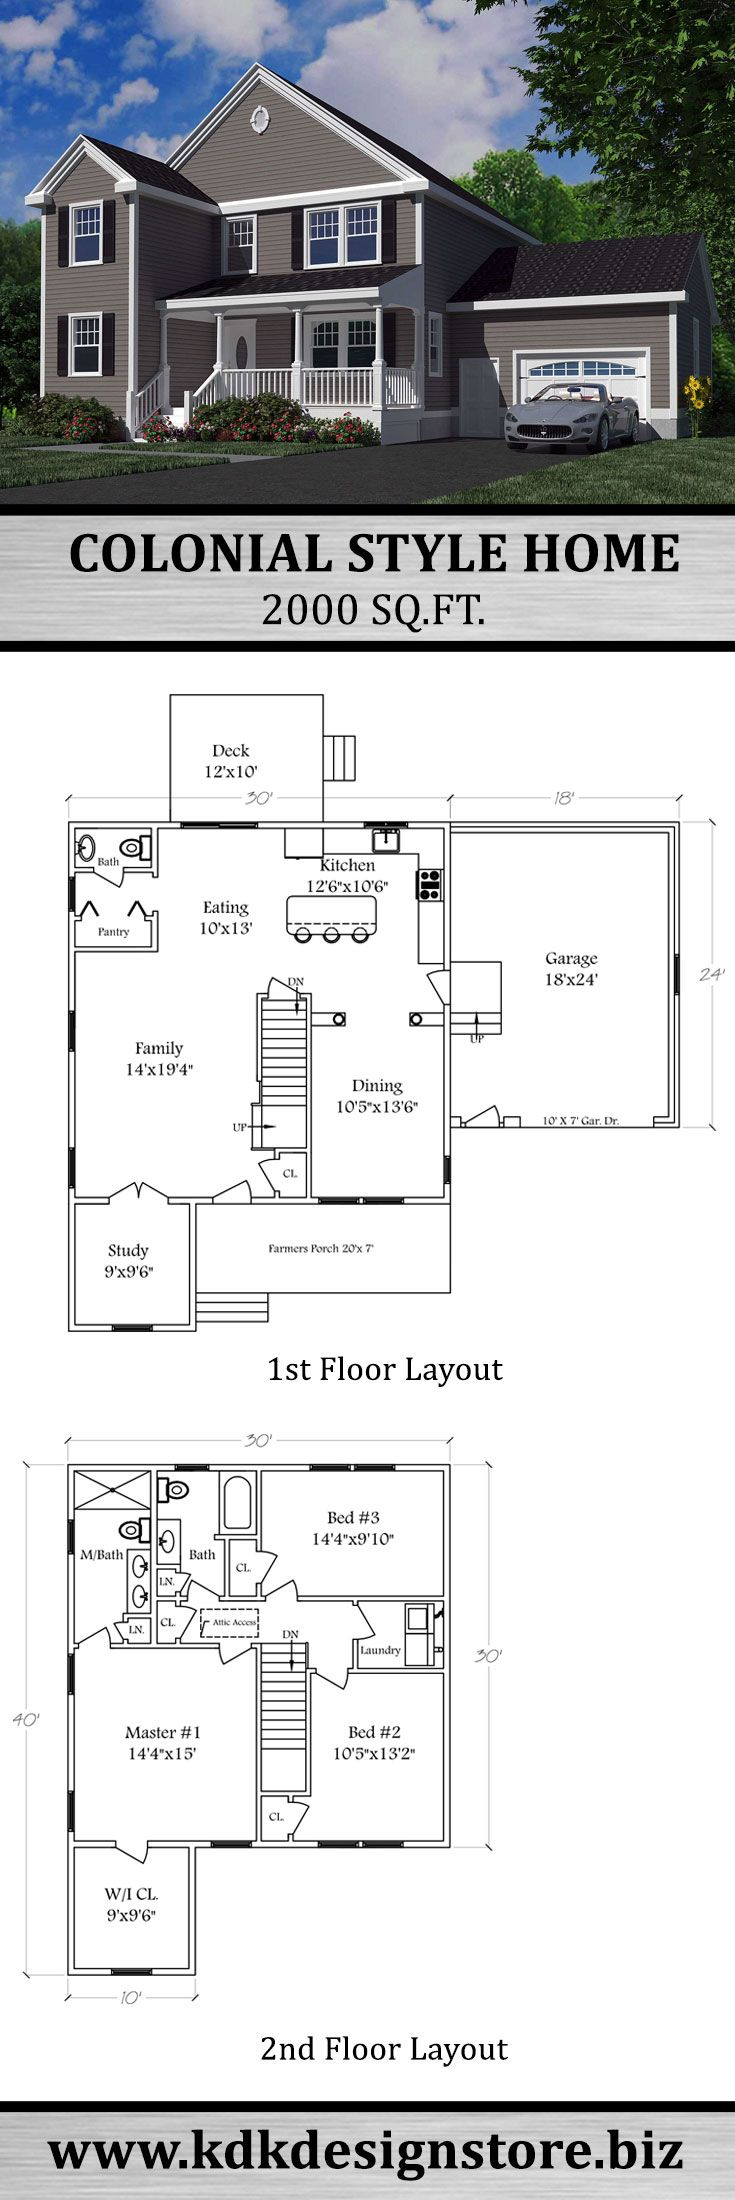 2000 Sq.Ft. Colonial Home | KDK Design, Inc. | Colonial ...